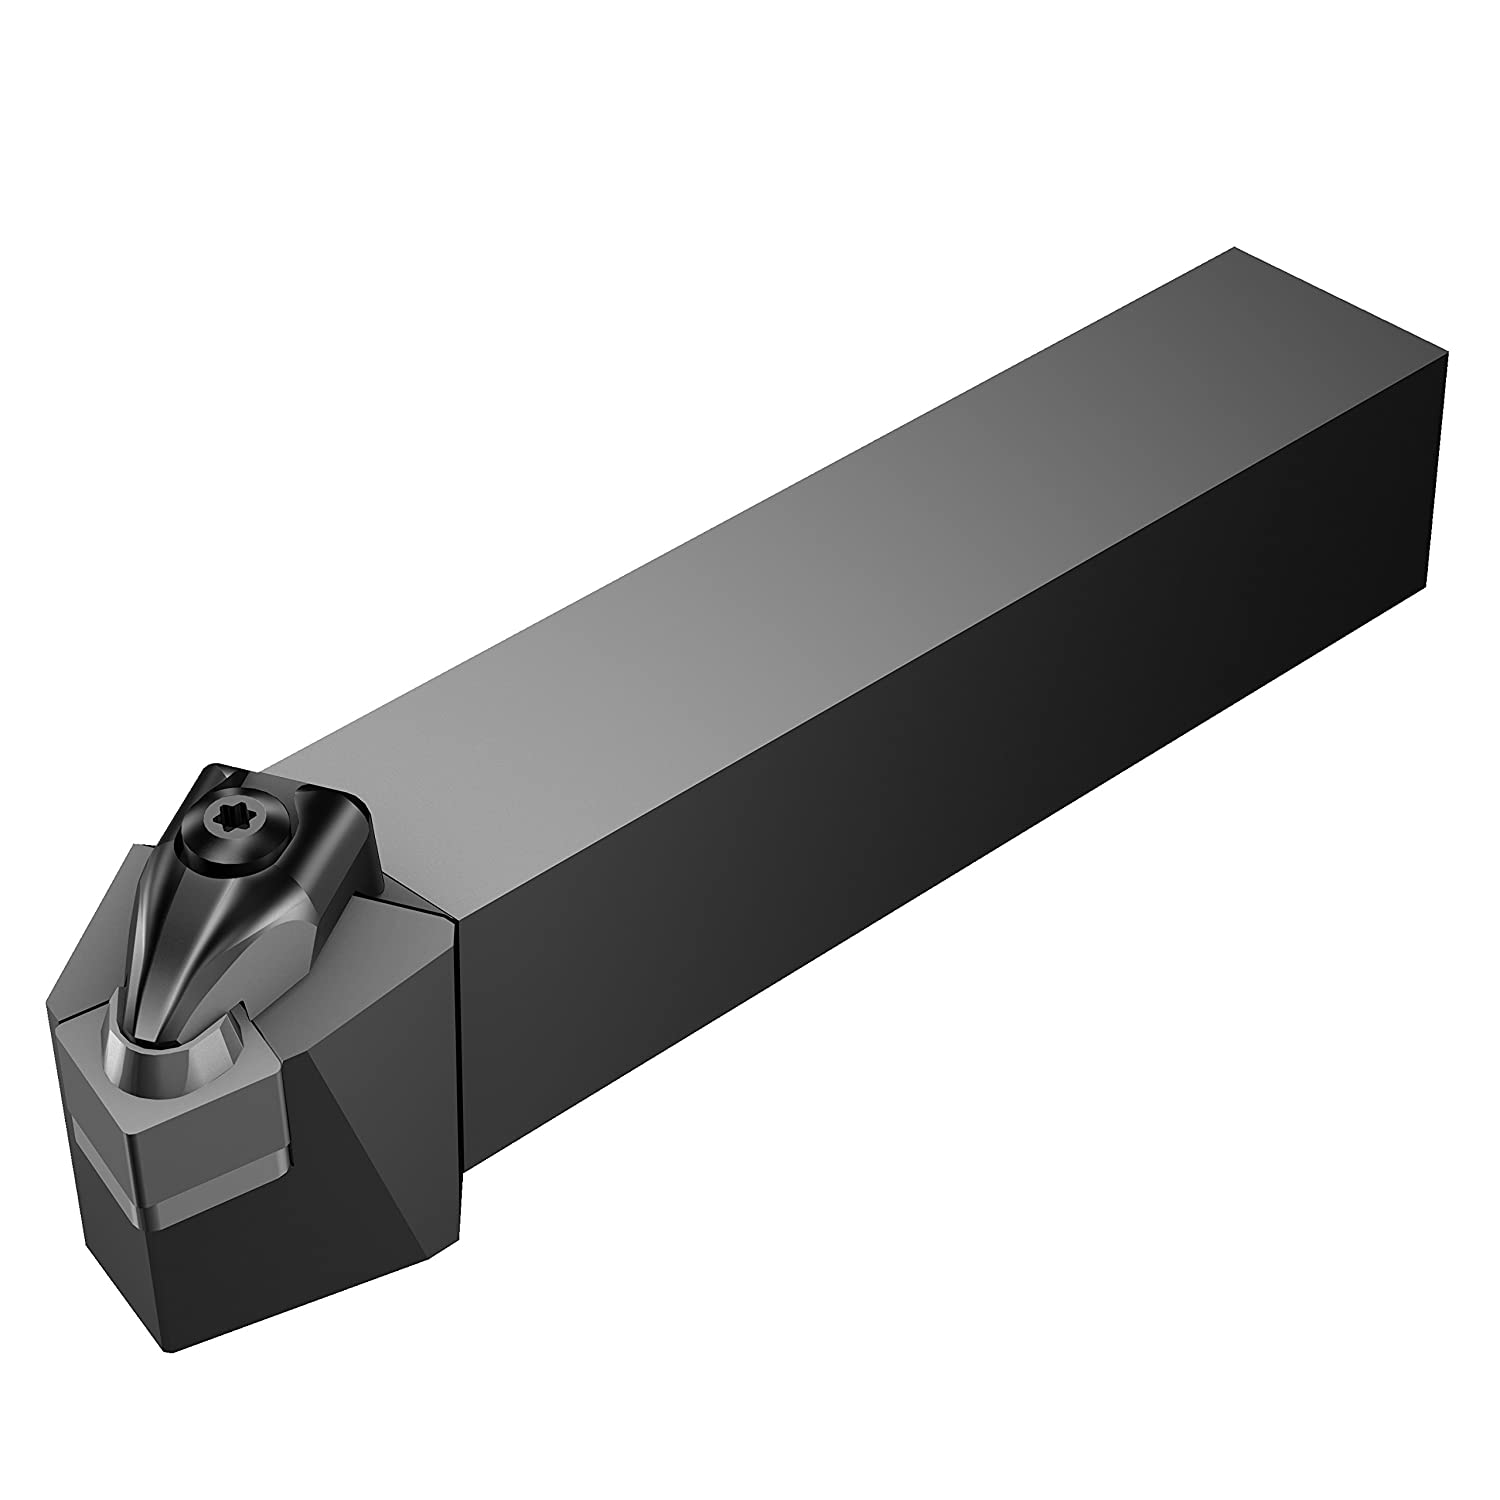 Price reduction Sandvik Coromant CSRNR 3232P 19-IC Steel Holder for C T-Max Ultra-Cheap Deals Tool